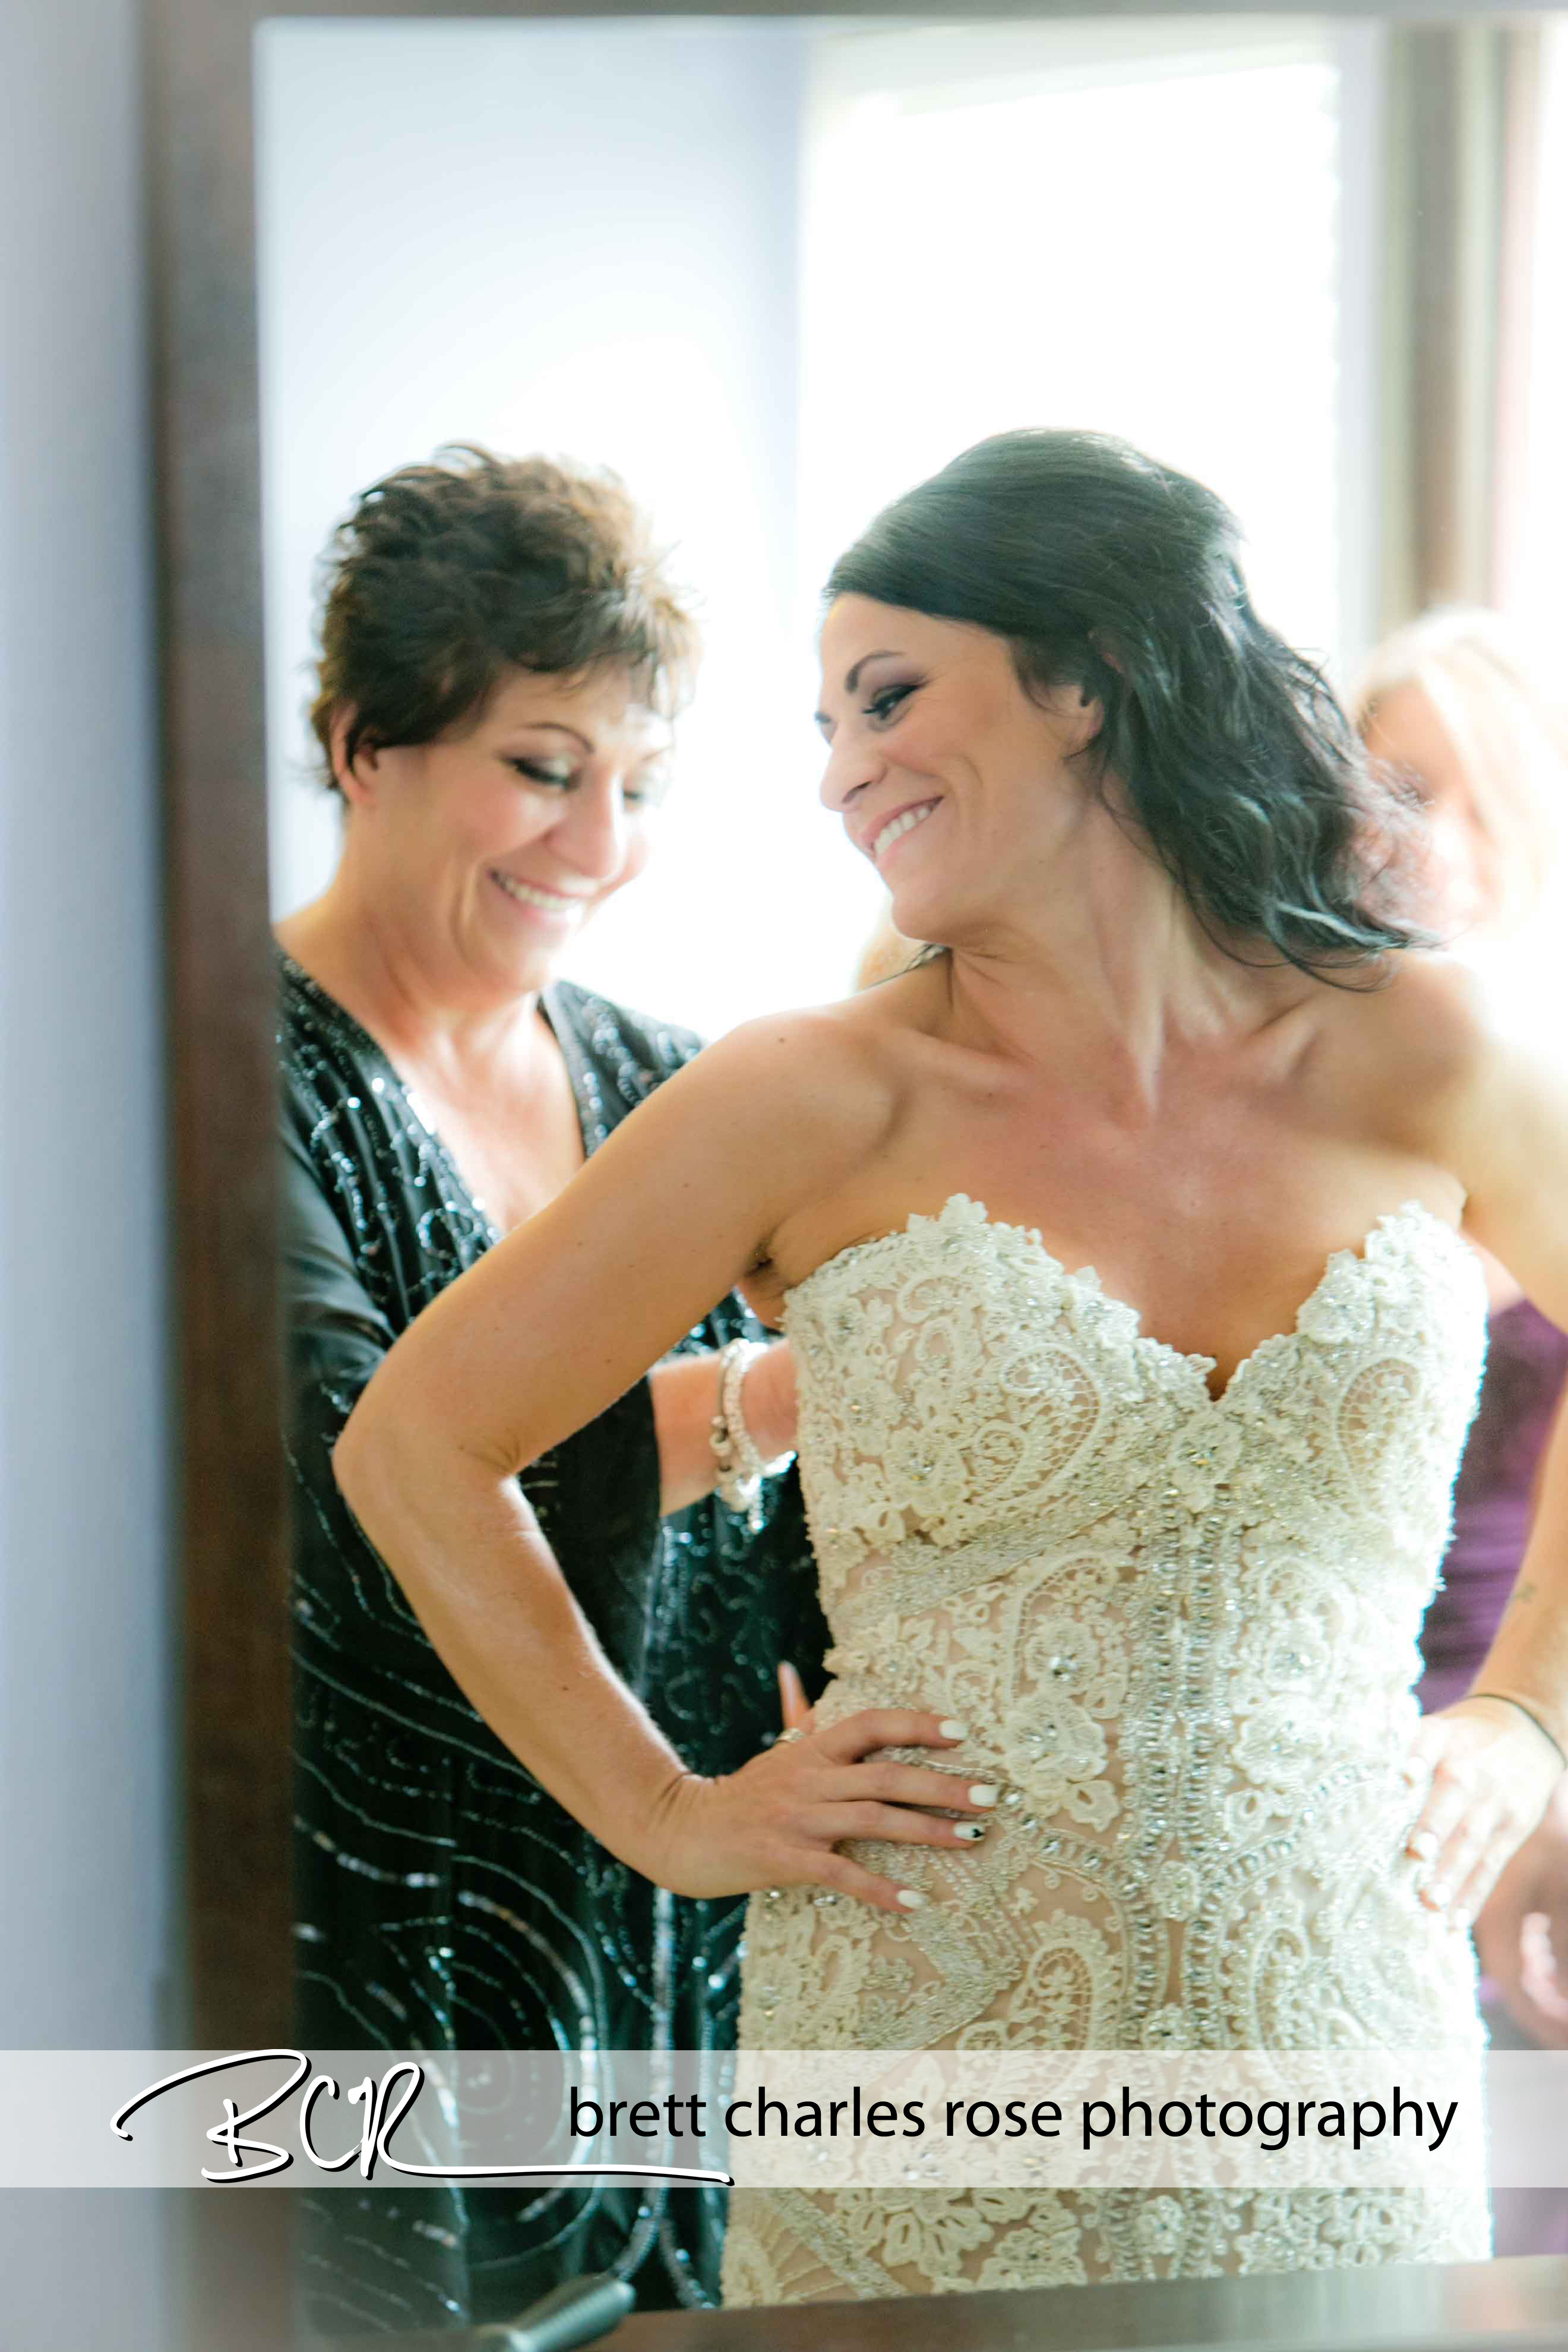 brides getting ready, wedding dress